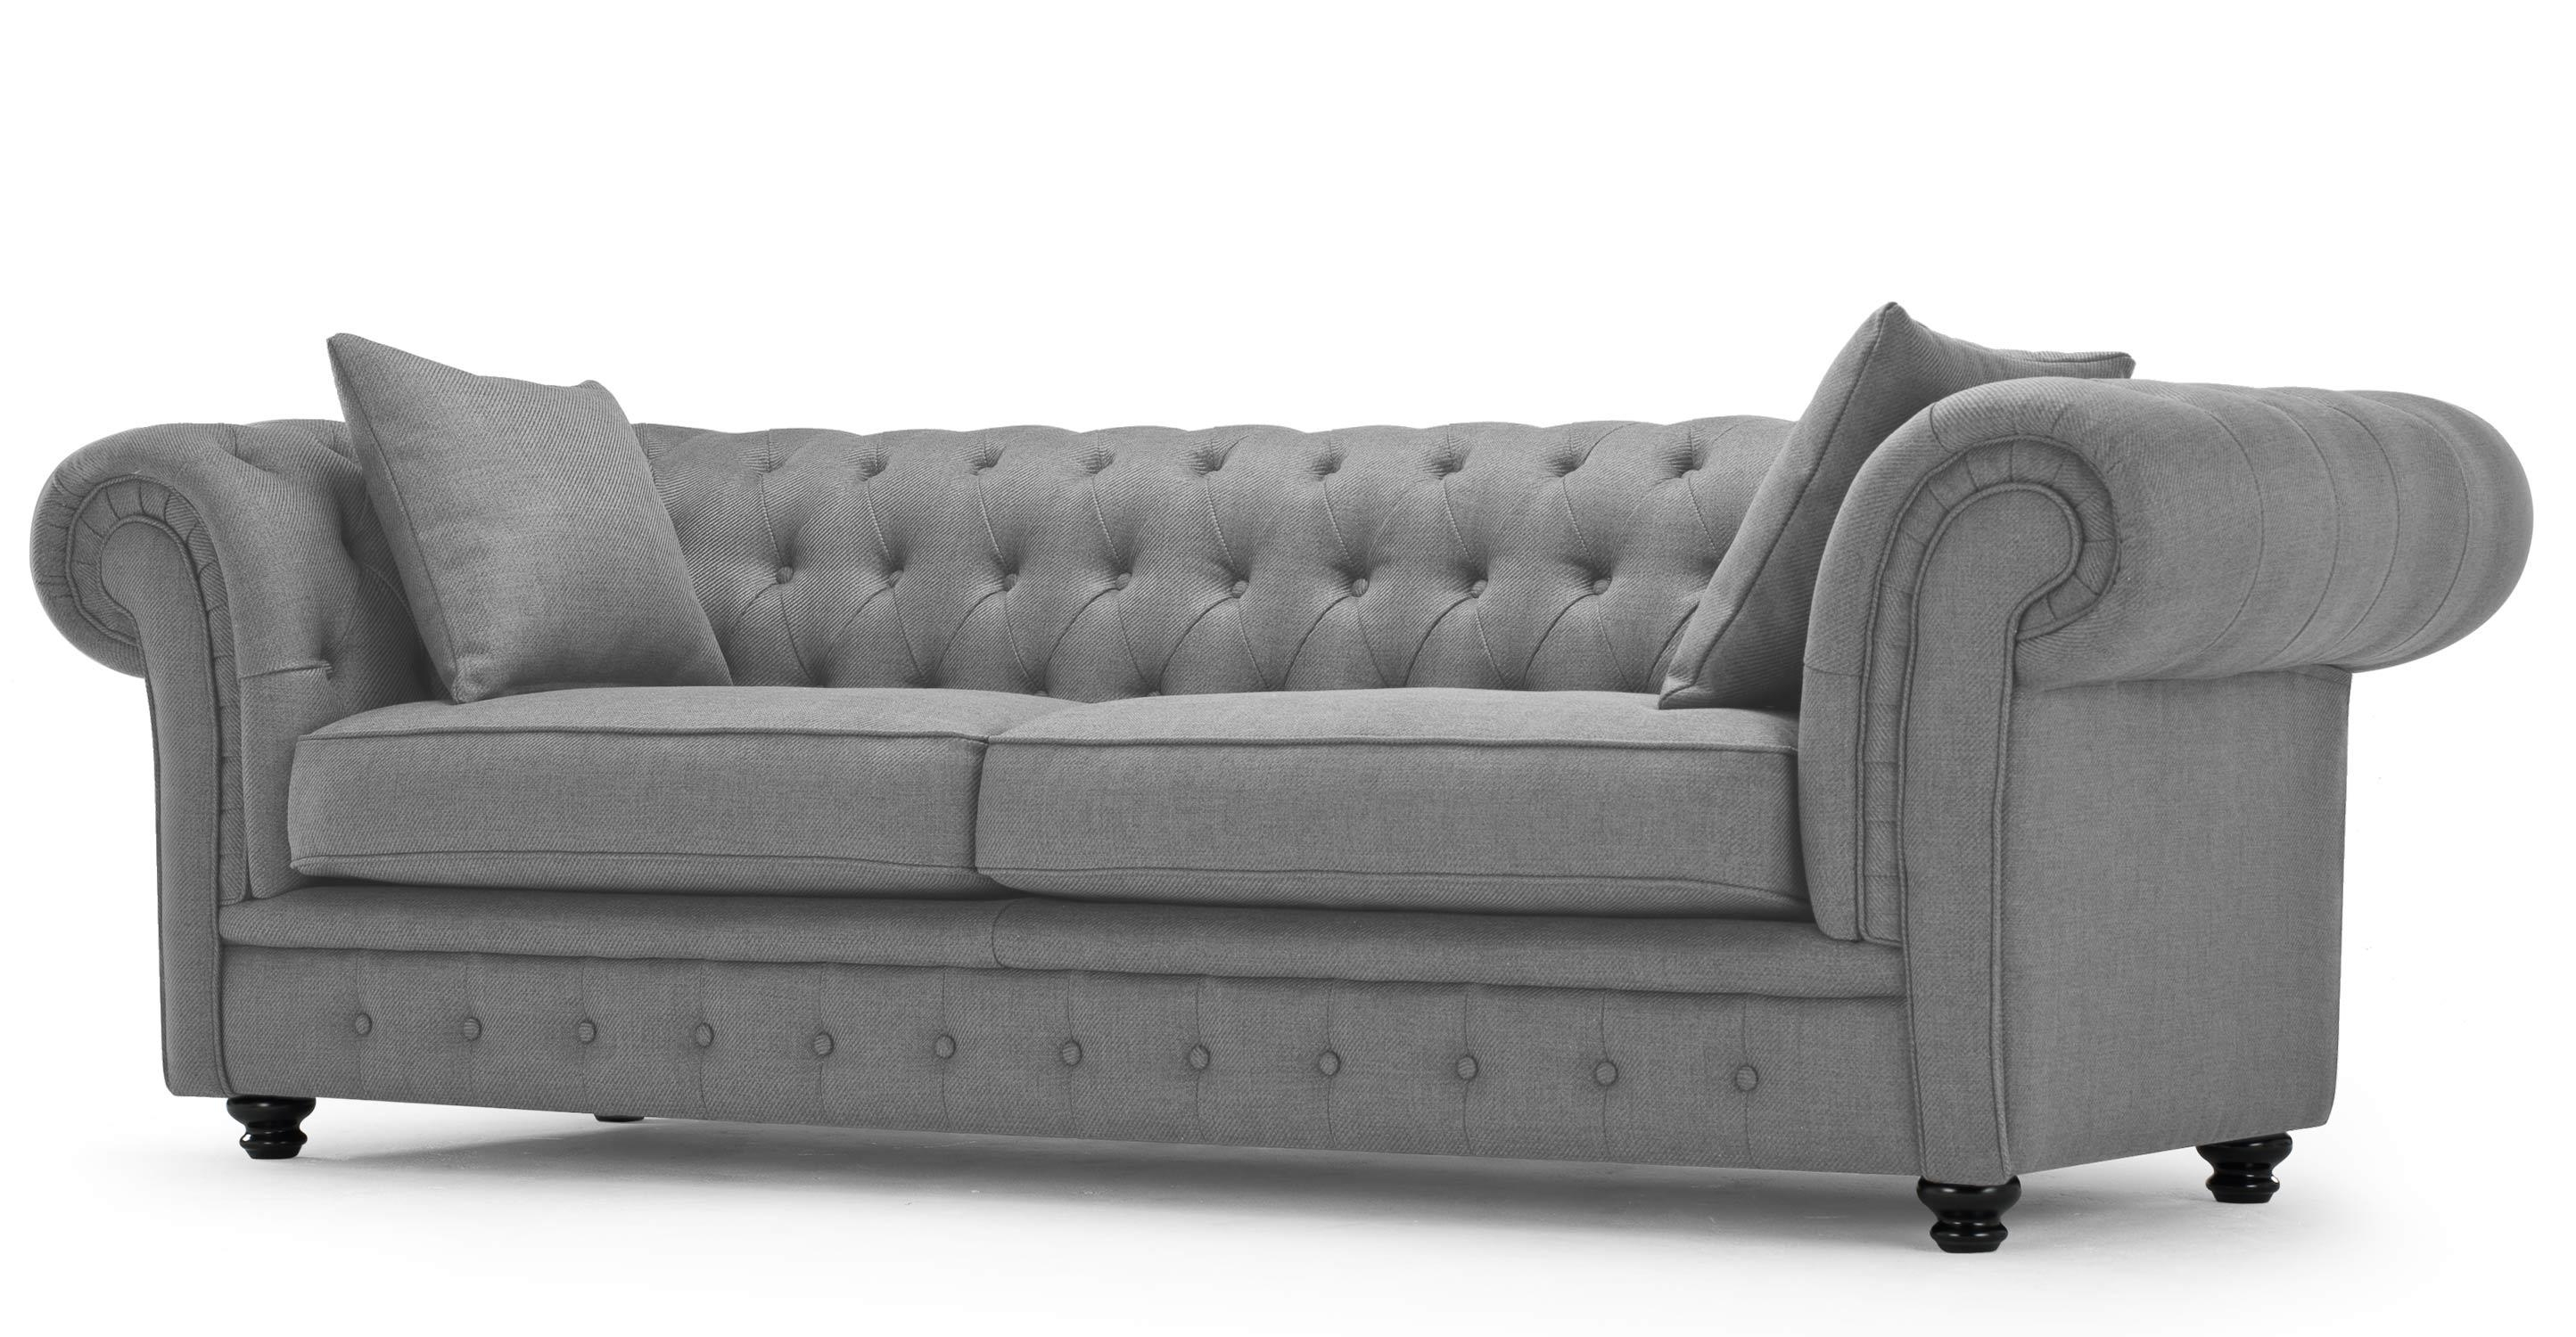 Sofas : Fabulous Green Chesterfield Sofa Chaise Sofa Tufted Within Cheap Tufted Sofas (View 2 of 23)